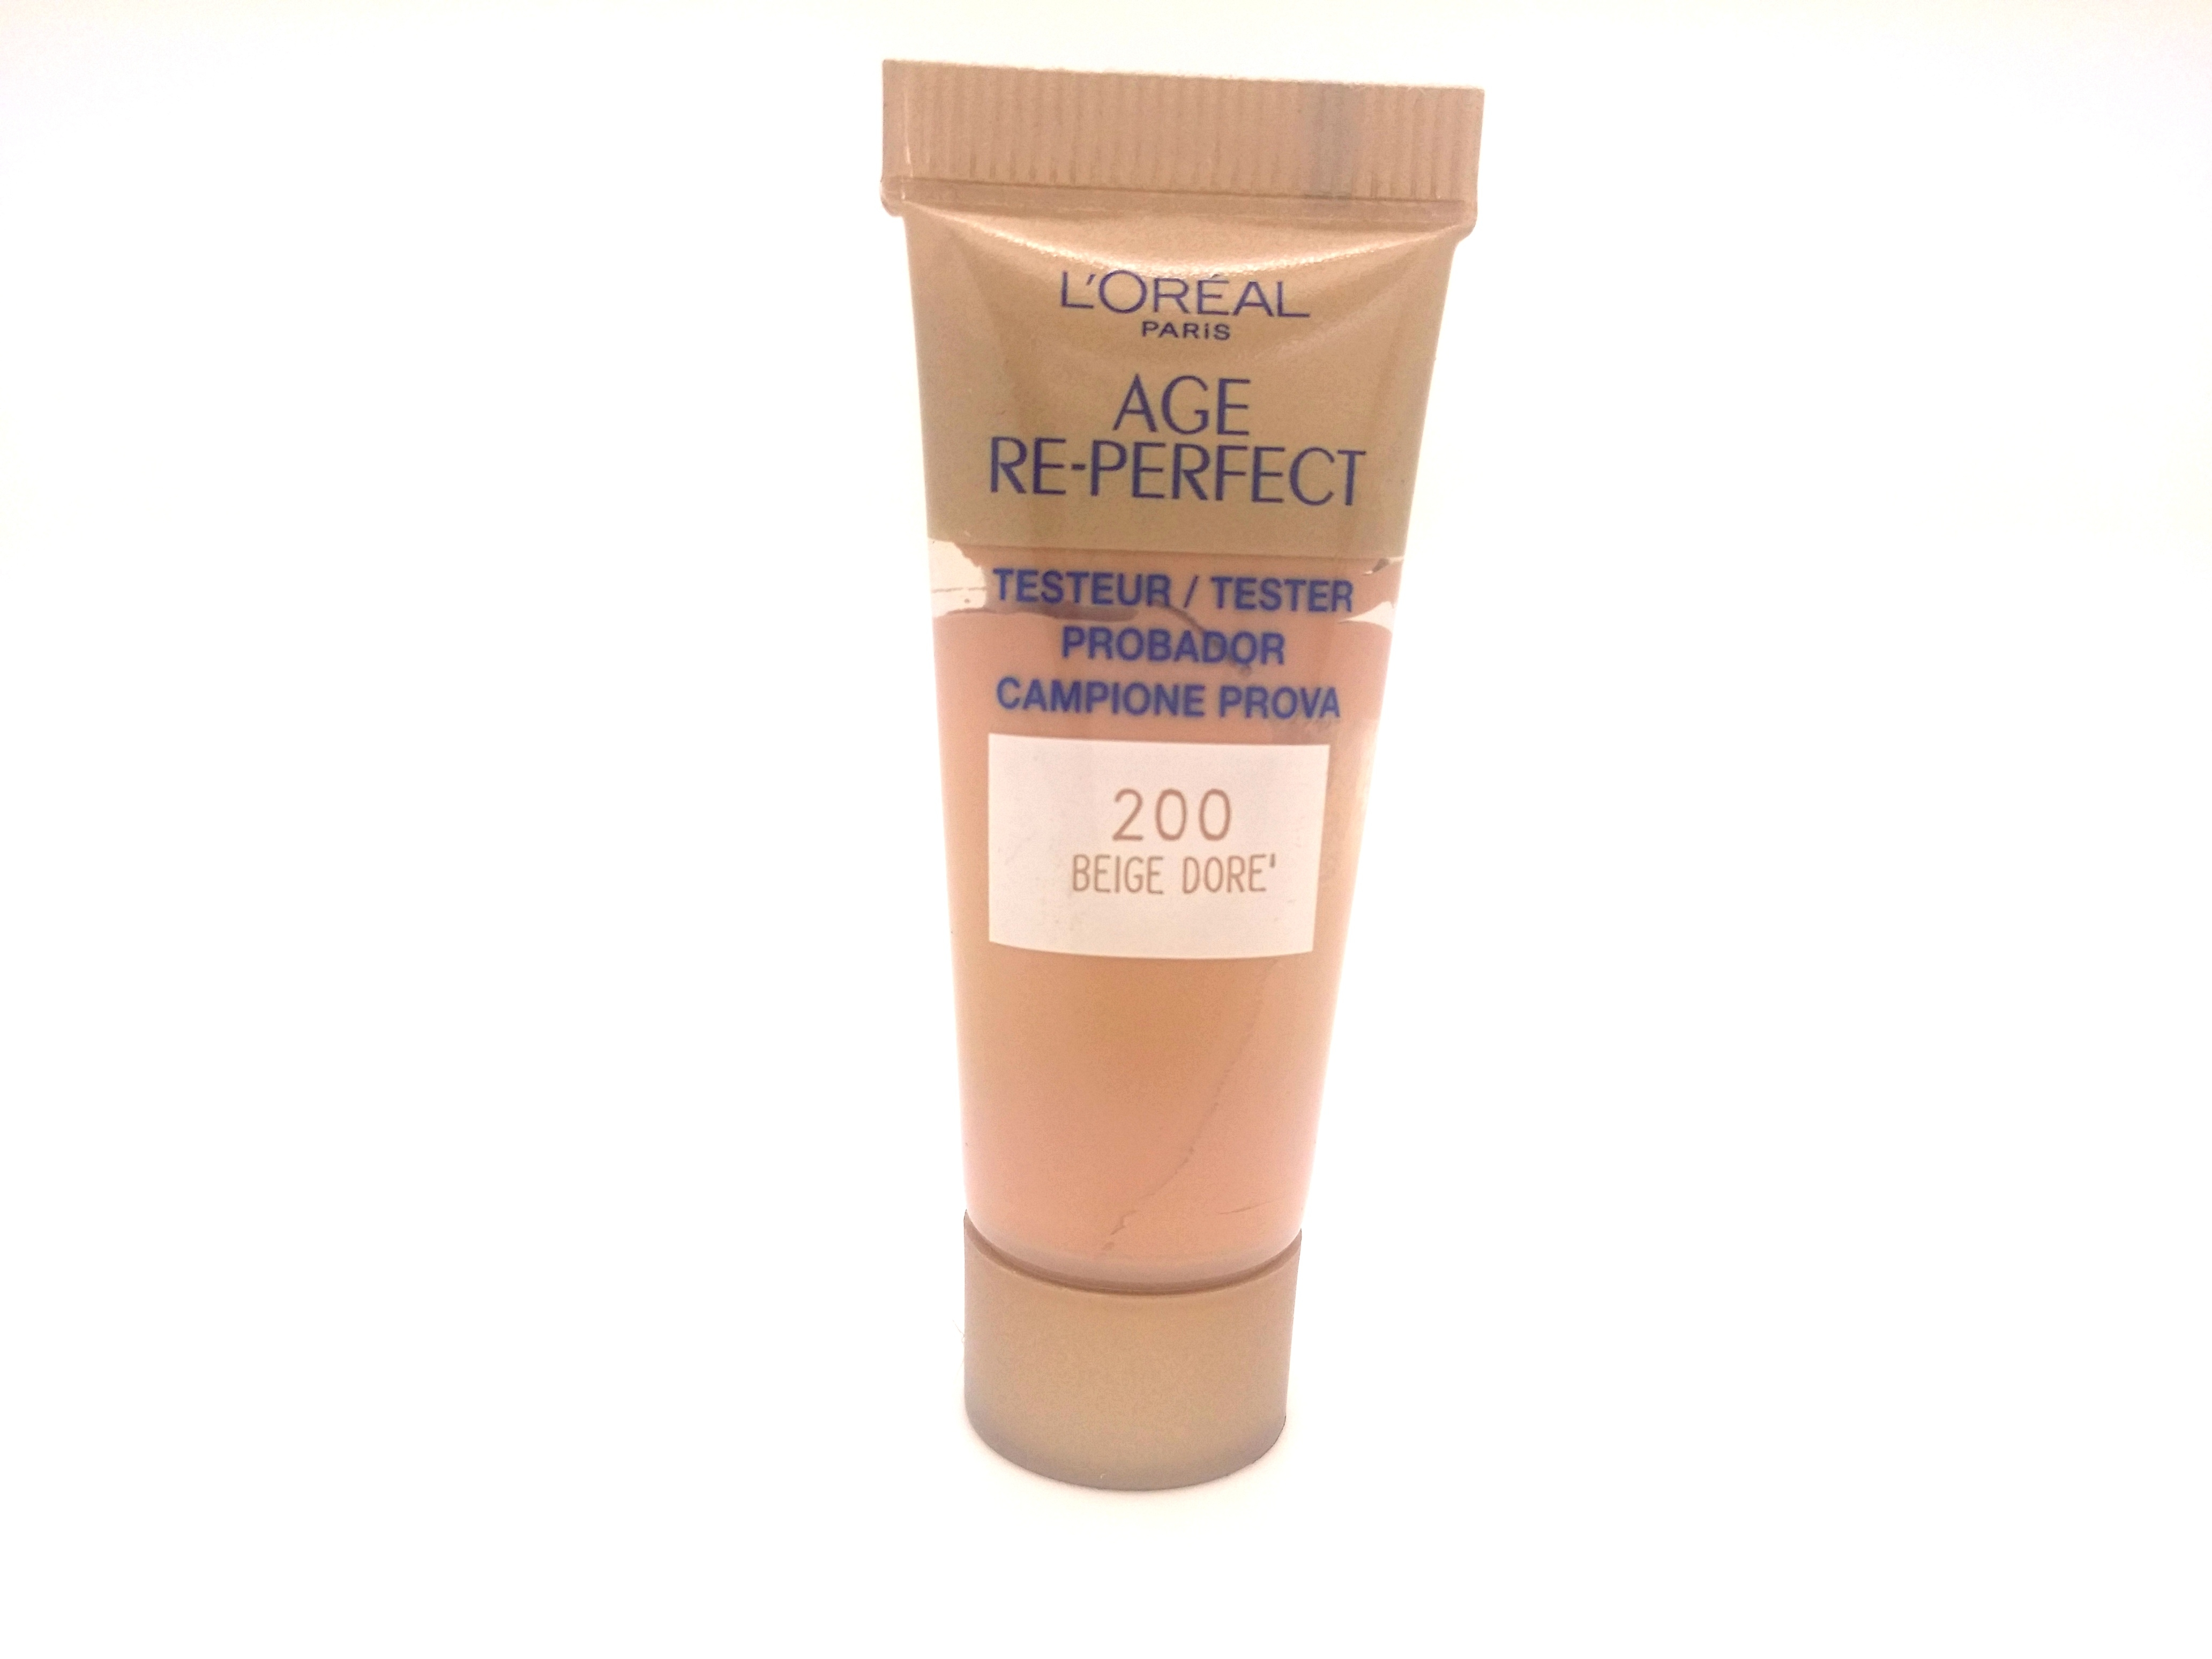 36 x L'Oreal Age Re-Perfect Foundation 200 Beige Dore - 10ml Tester